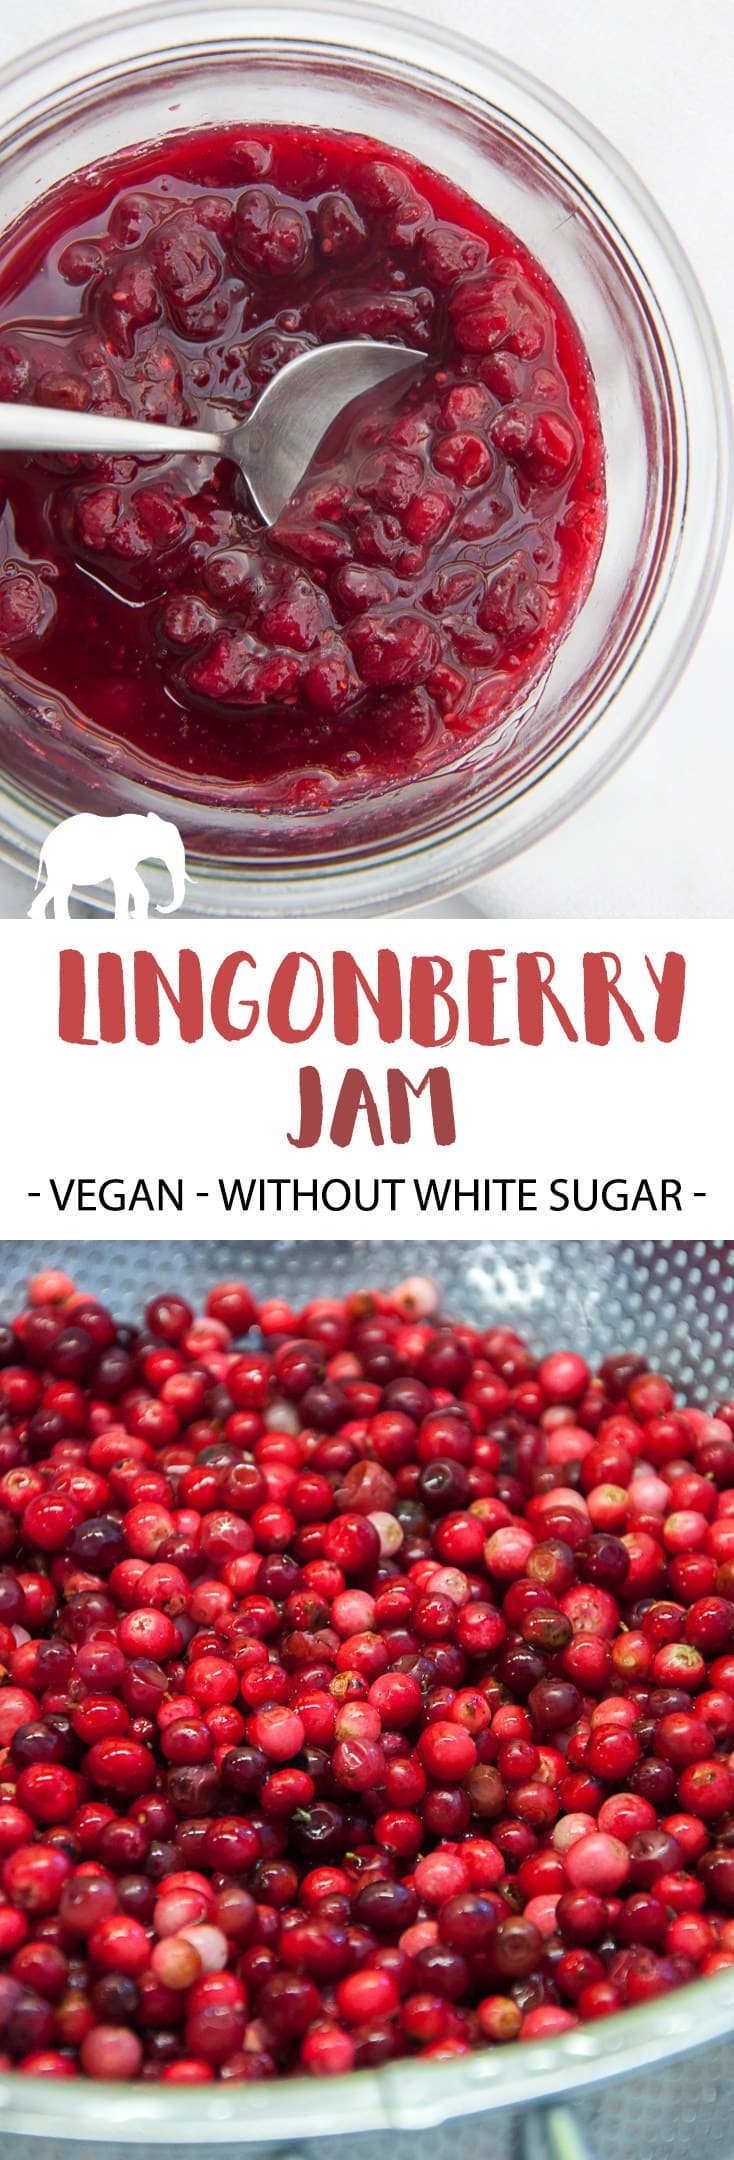 Vegan Lingonberry Jam without white sugar | ElephantasticVegan.com #jam #lingonberry #sauce #festive